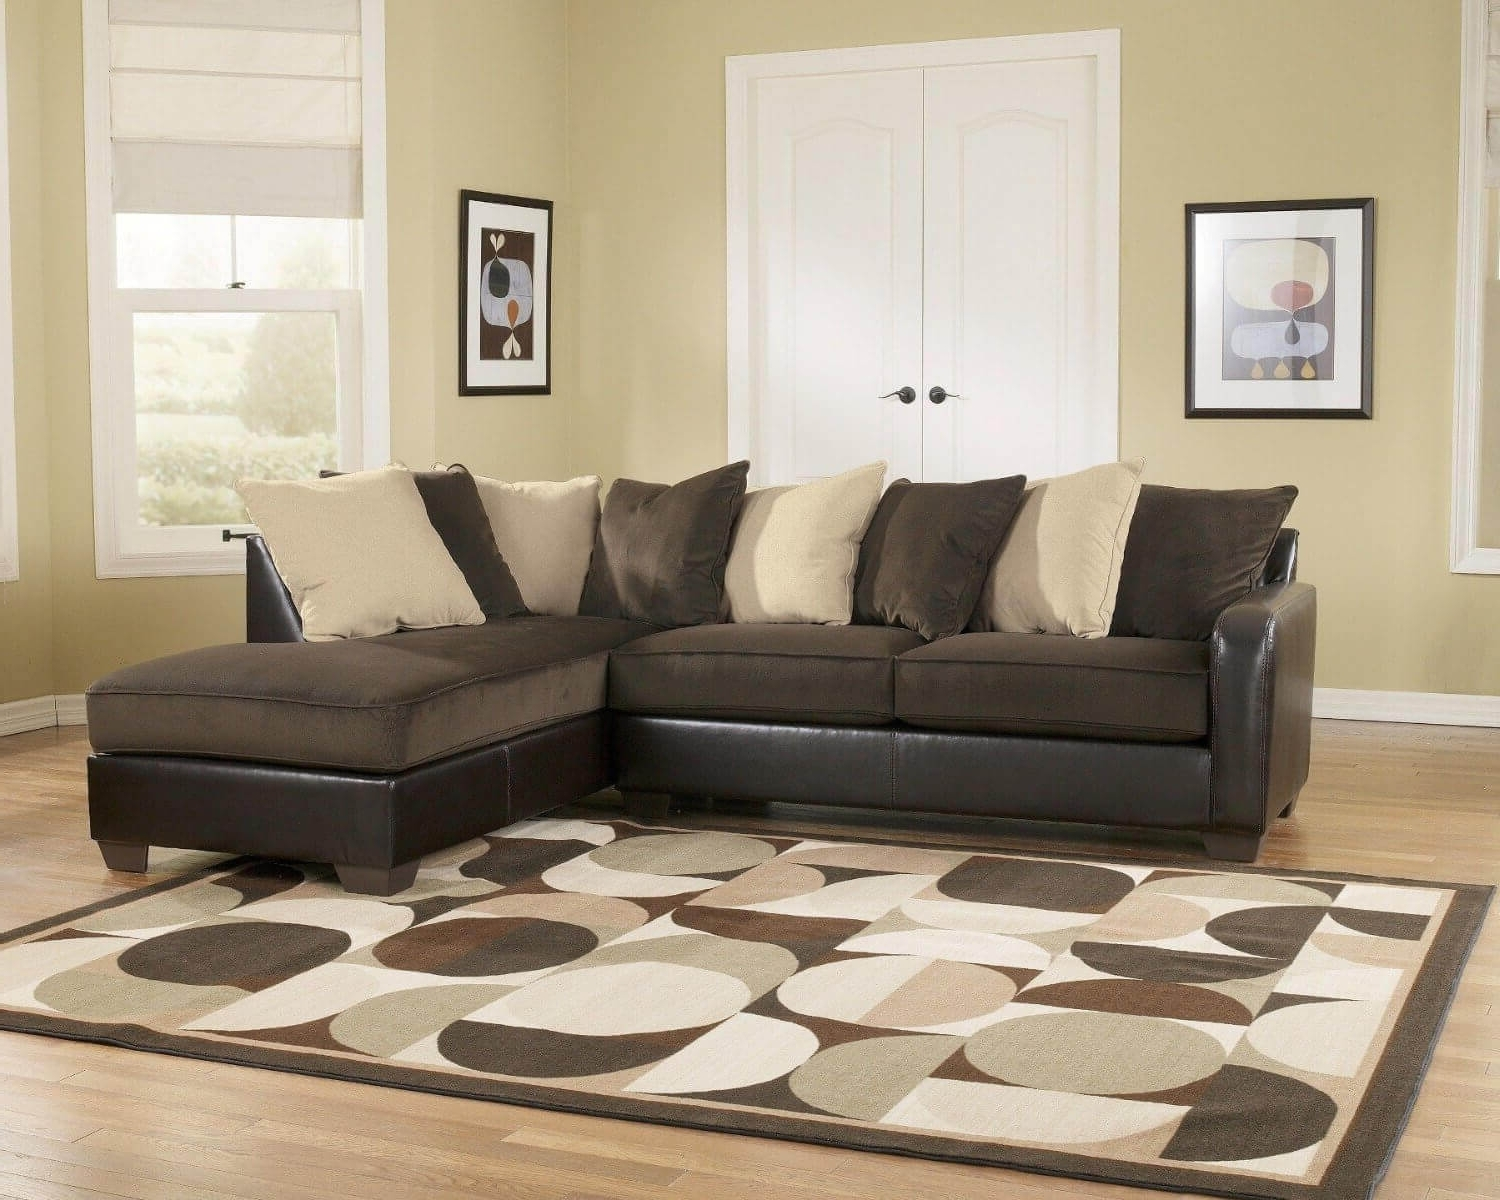 2018 Chocolate Brown Sectional Sofas Pertaining To 100 Awesome Sectional Sofas Under $1,000 (2018) (View 3 of 15)